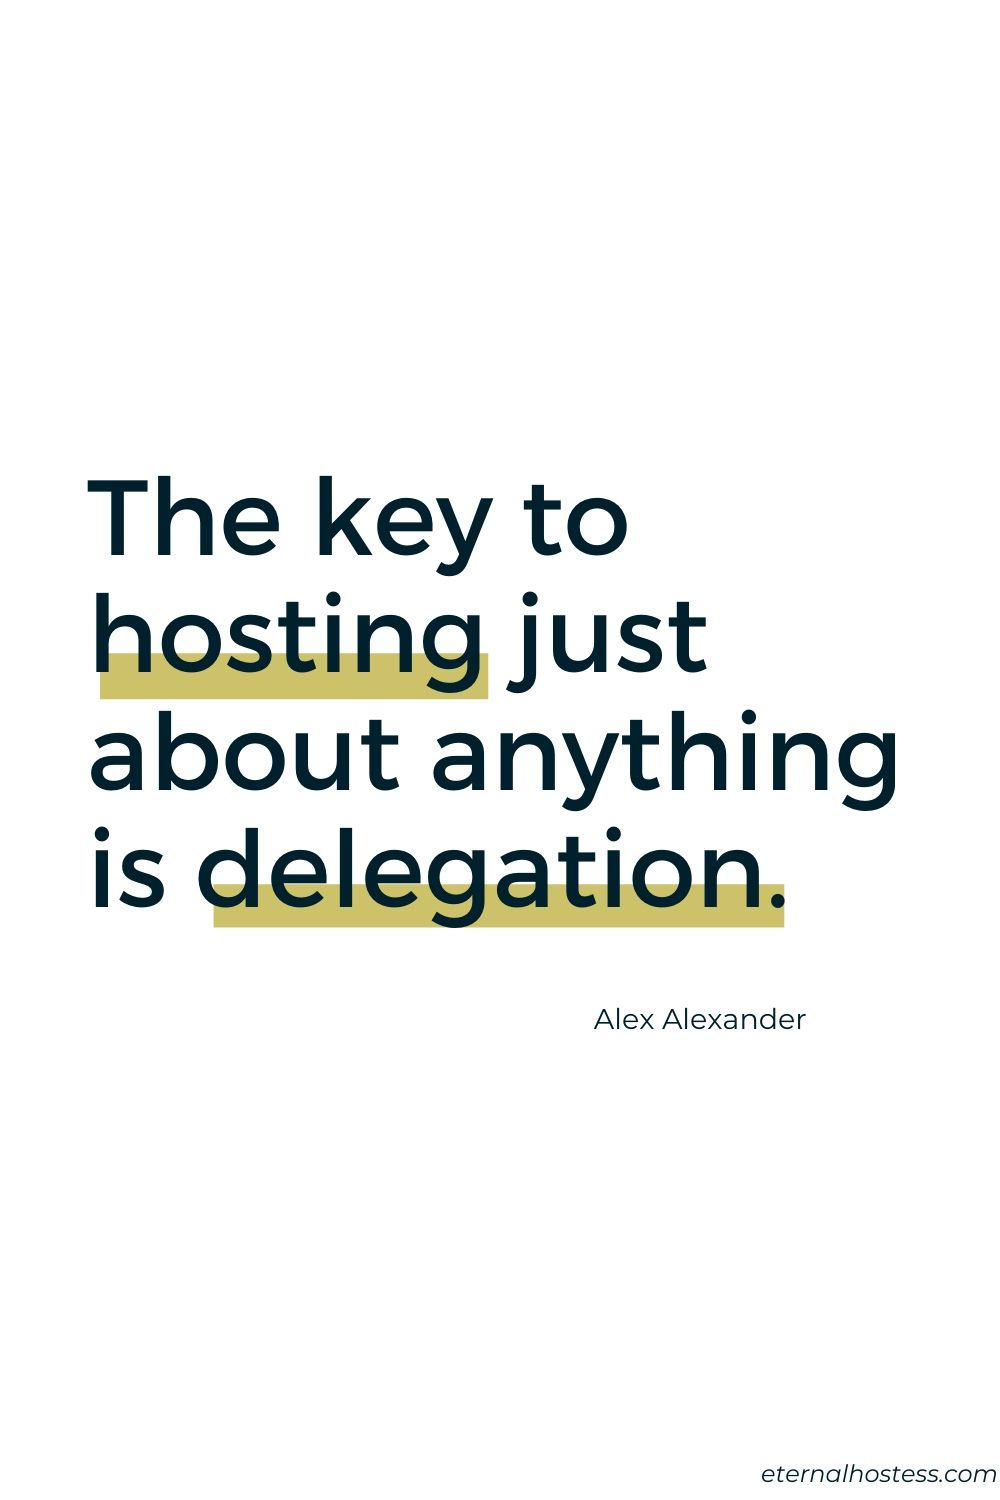 The Secret to Hosting just about anything is delegation. - Alex Alexander